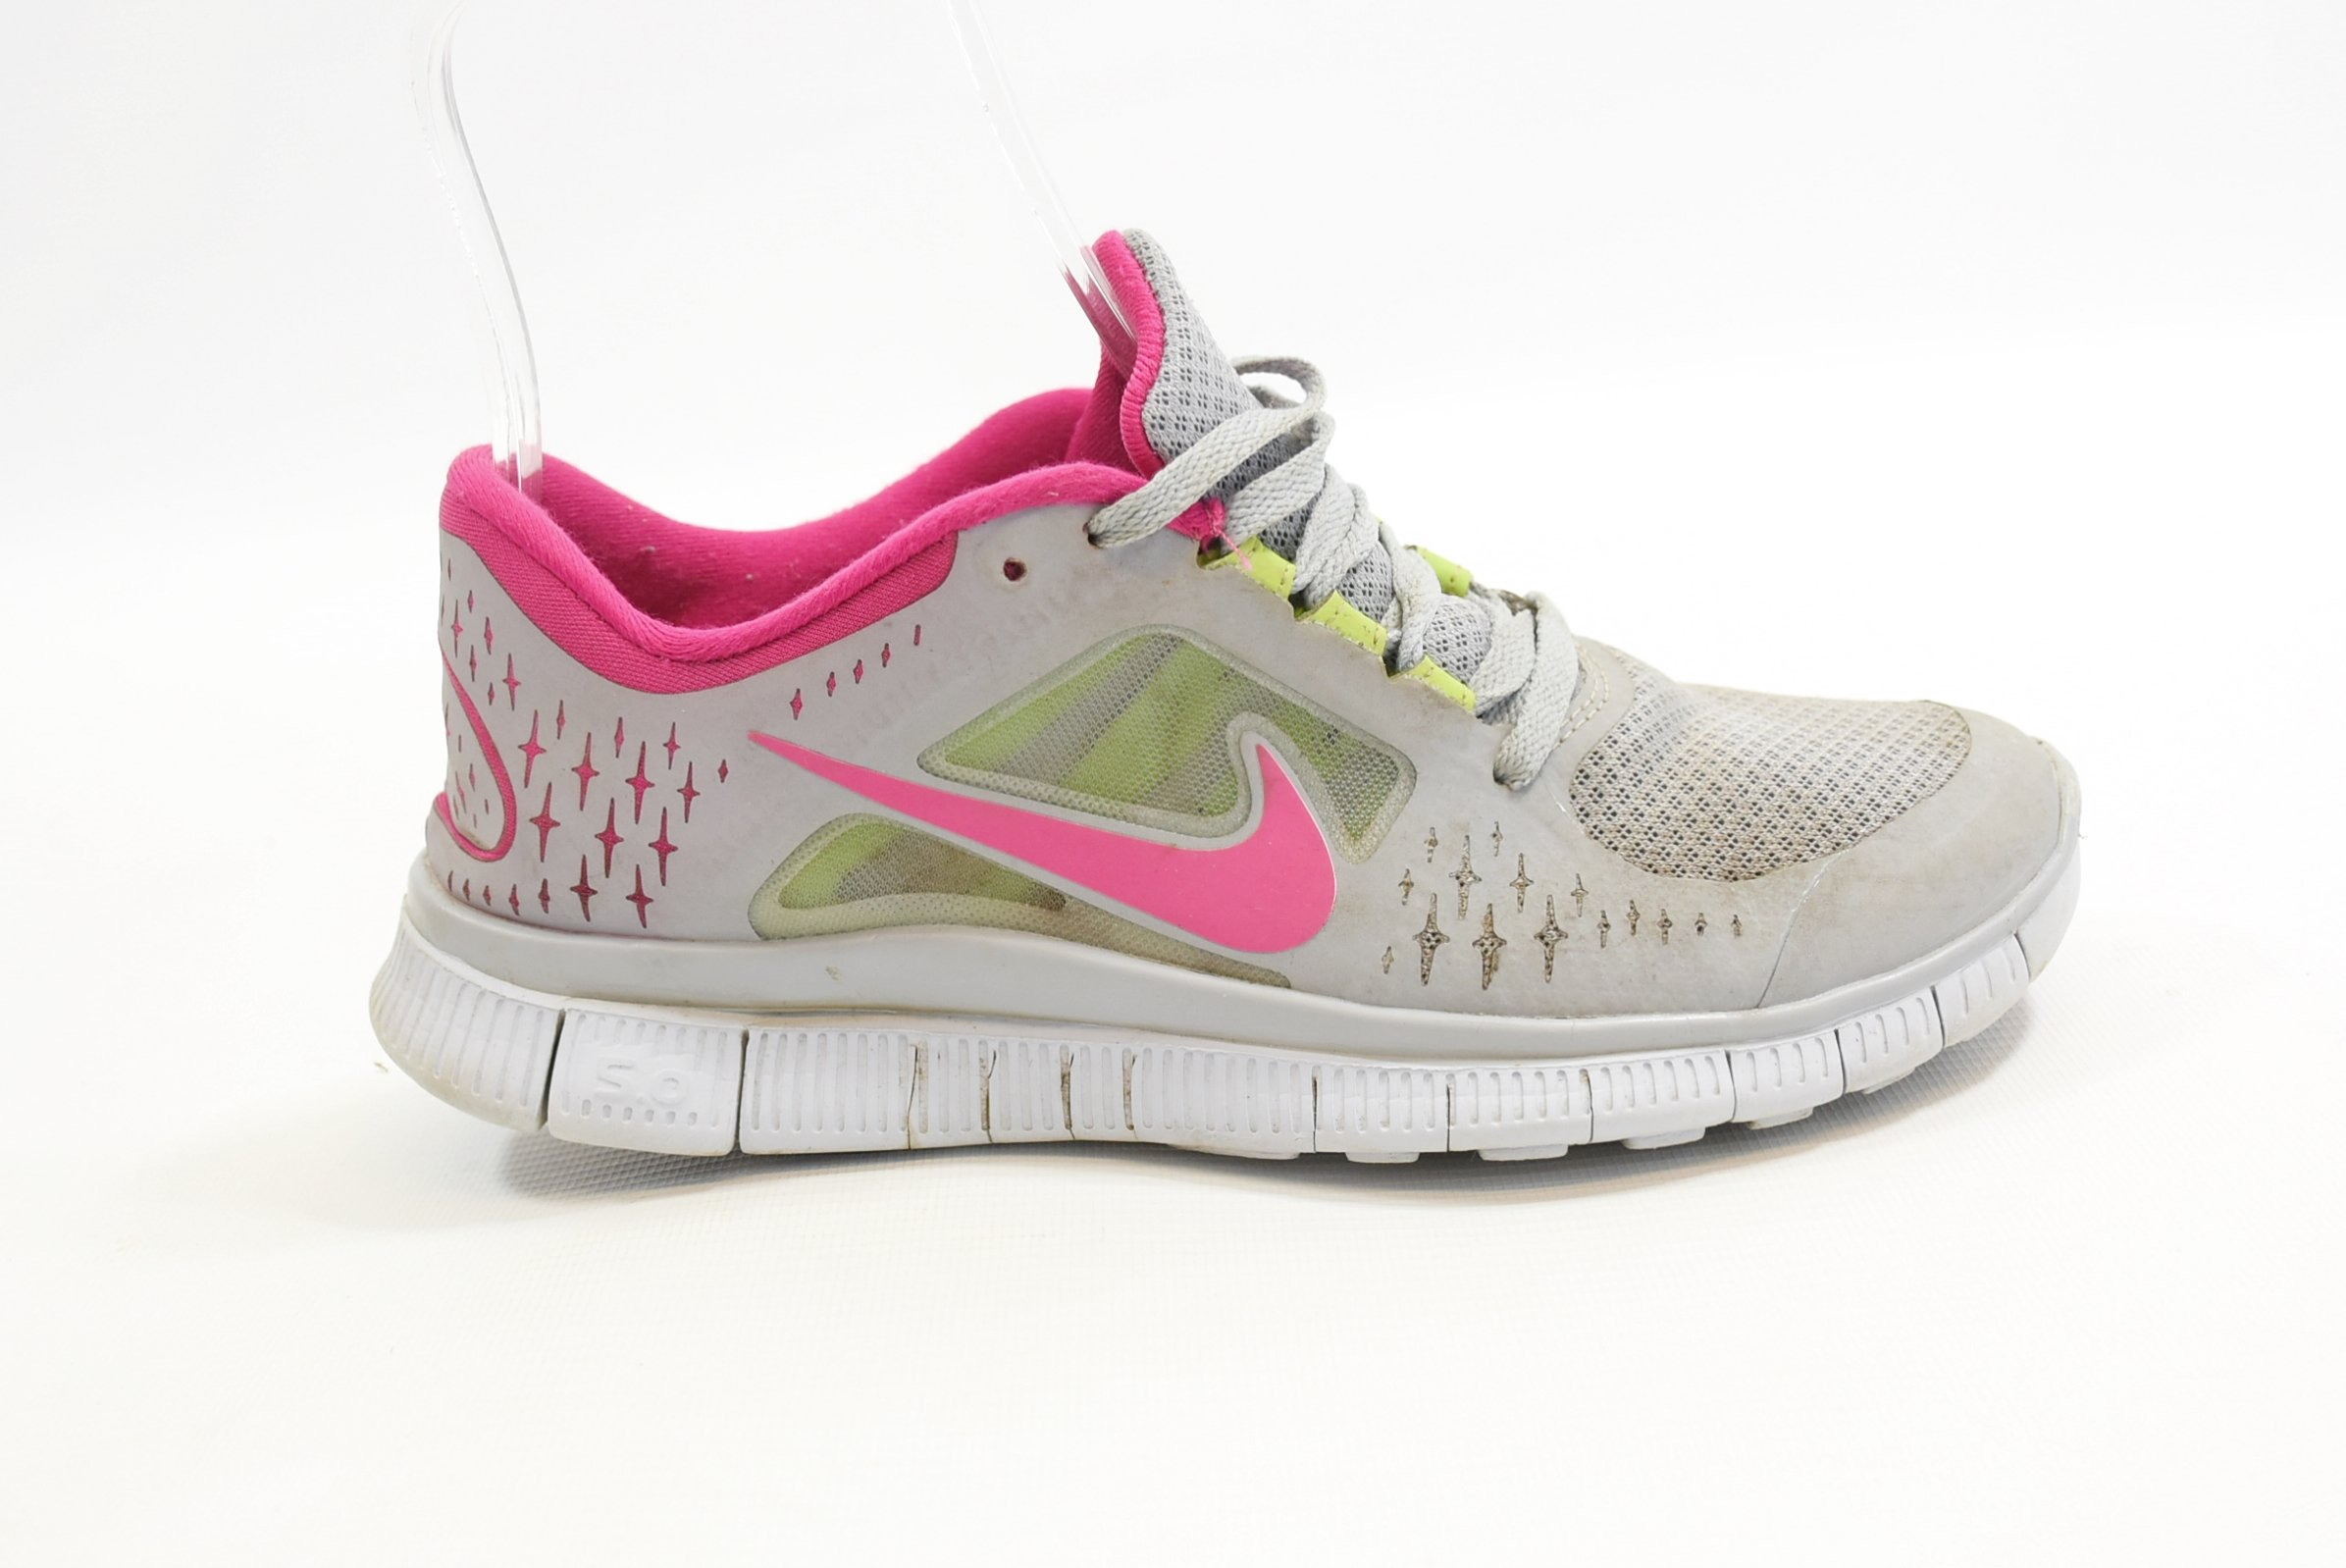 brand new 0a554 9e762 K4488 NIKE FREE RUN 3 BUTY DAMSKIE DO BIEGANIA *38 - 7352969931 ...